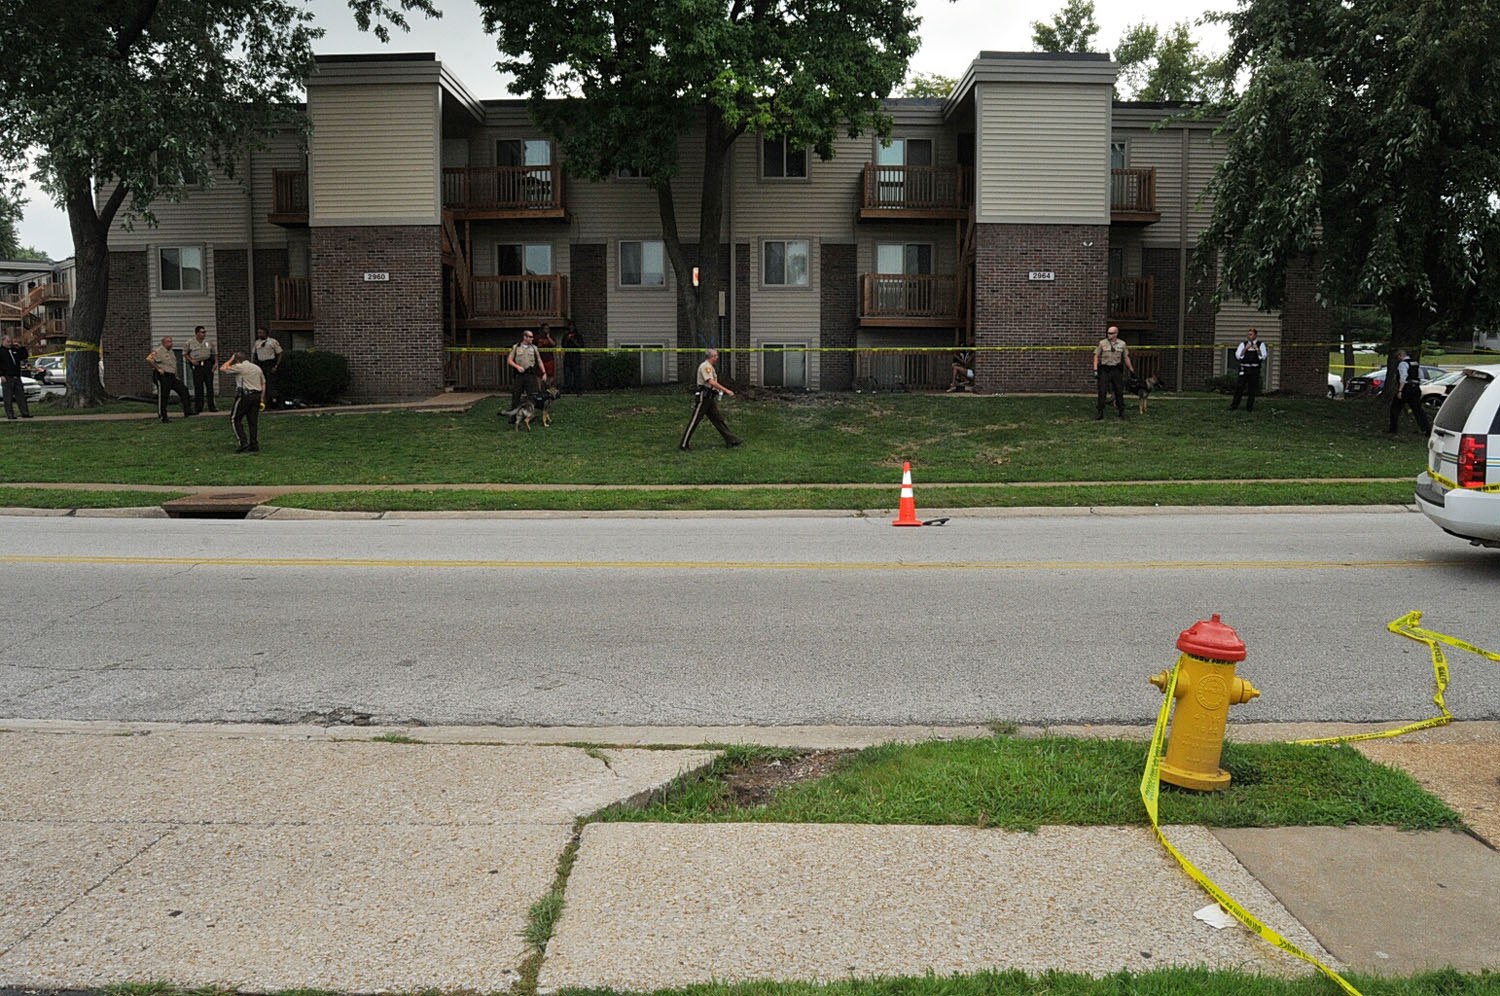 A traffic cone and police tape mark the scene near where Brown was shot on Canfield Drive in Ferguson, Mo. in August